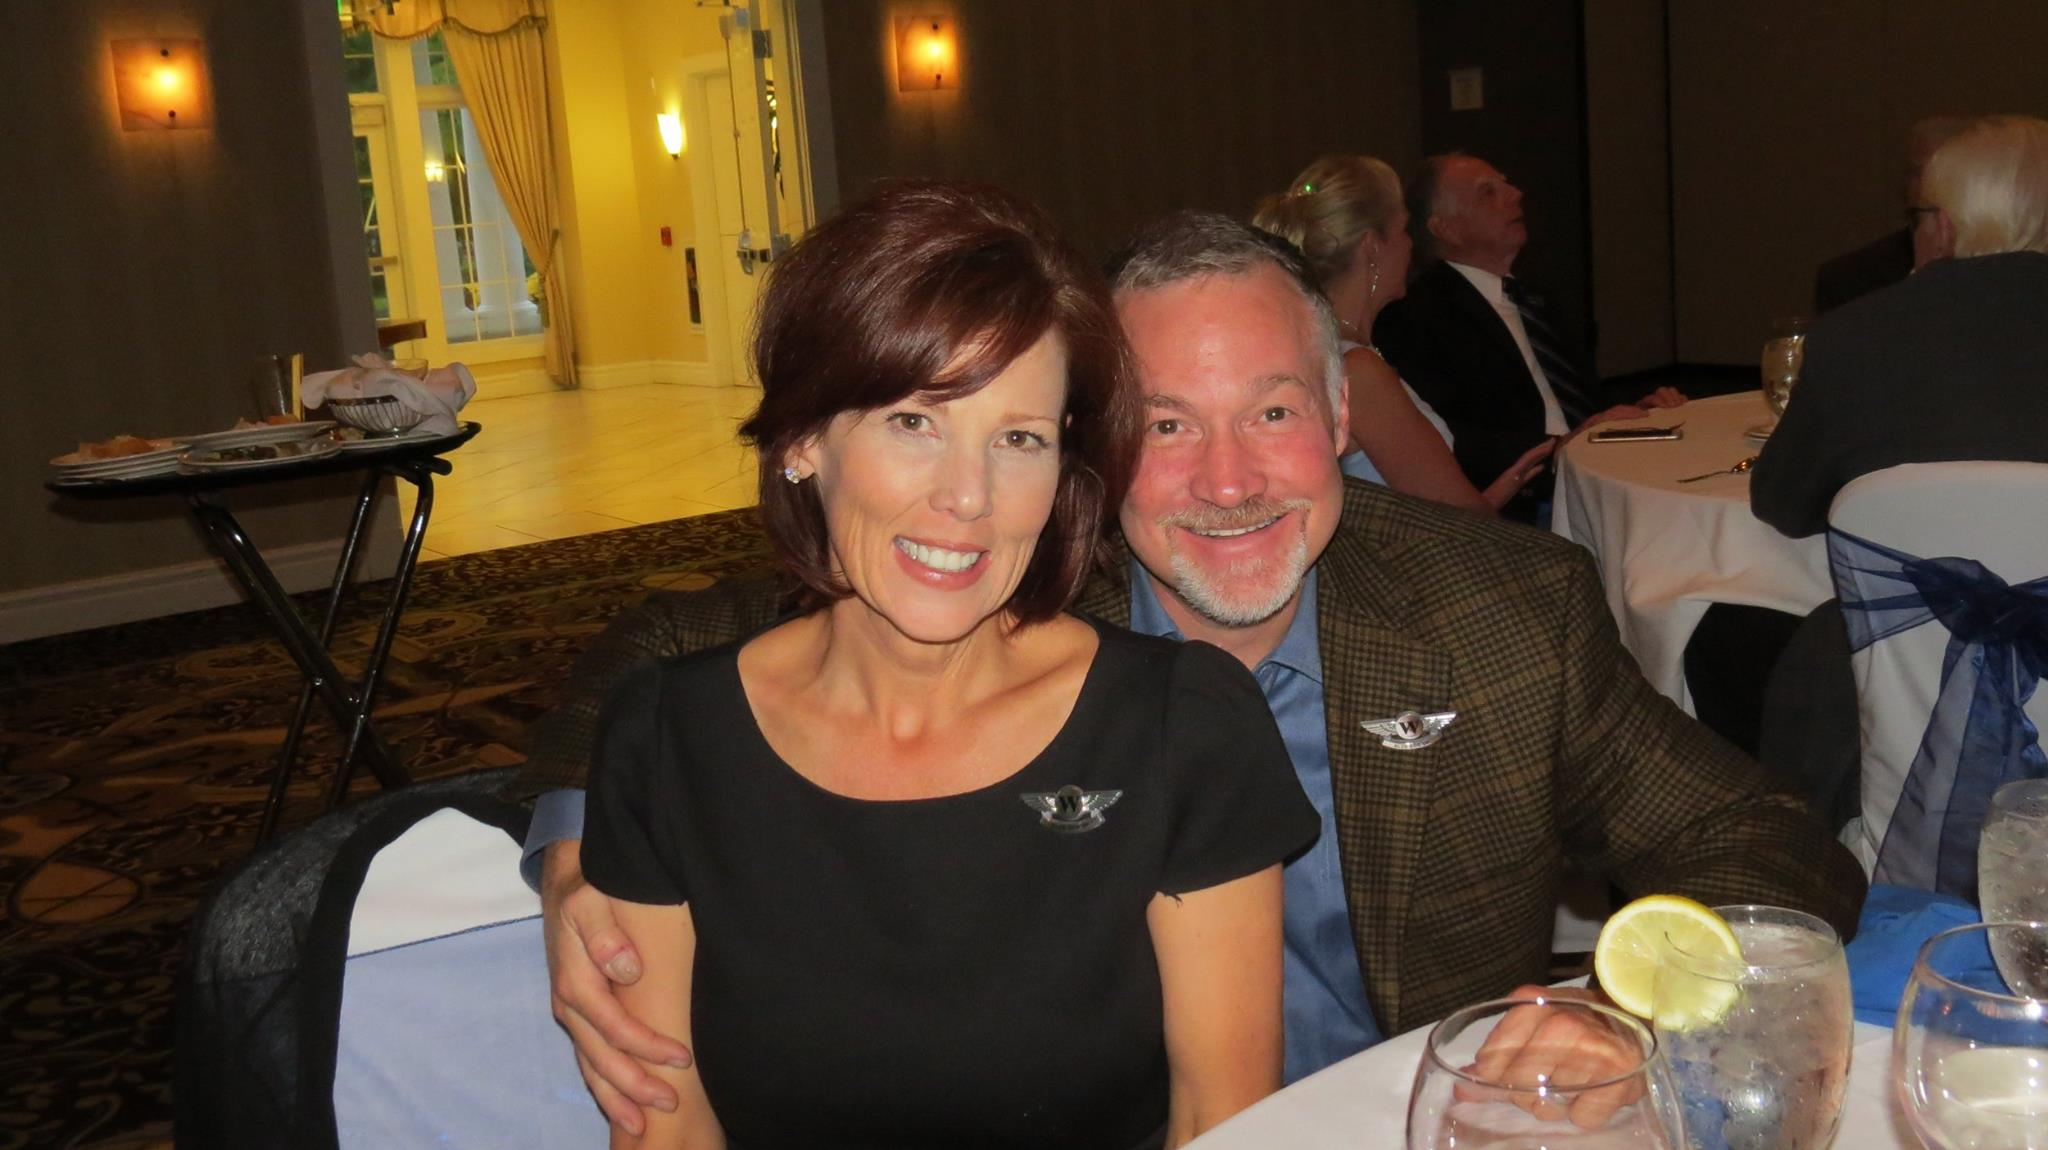 Dr. Criscione and his wife Linda smiling at a dinner conference